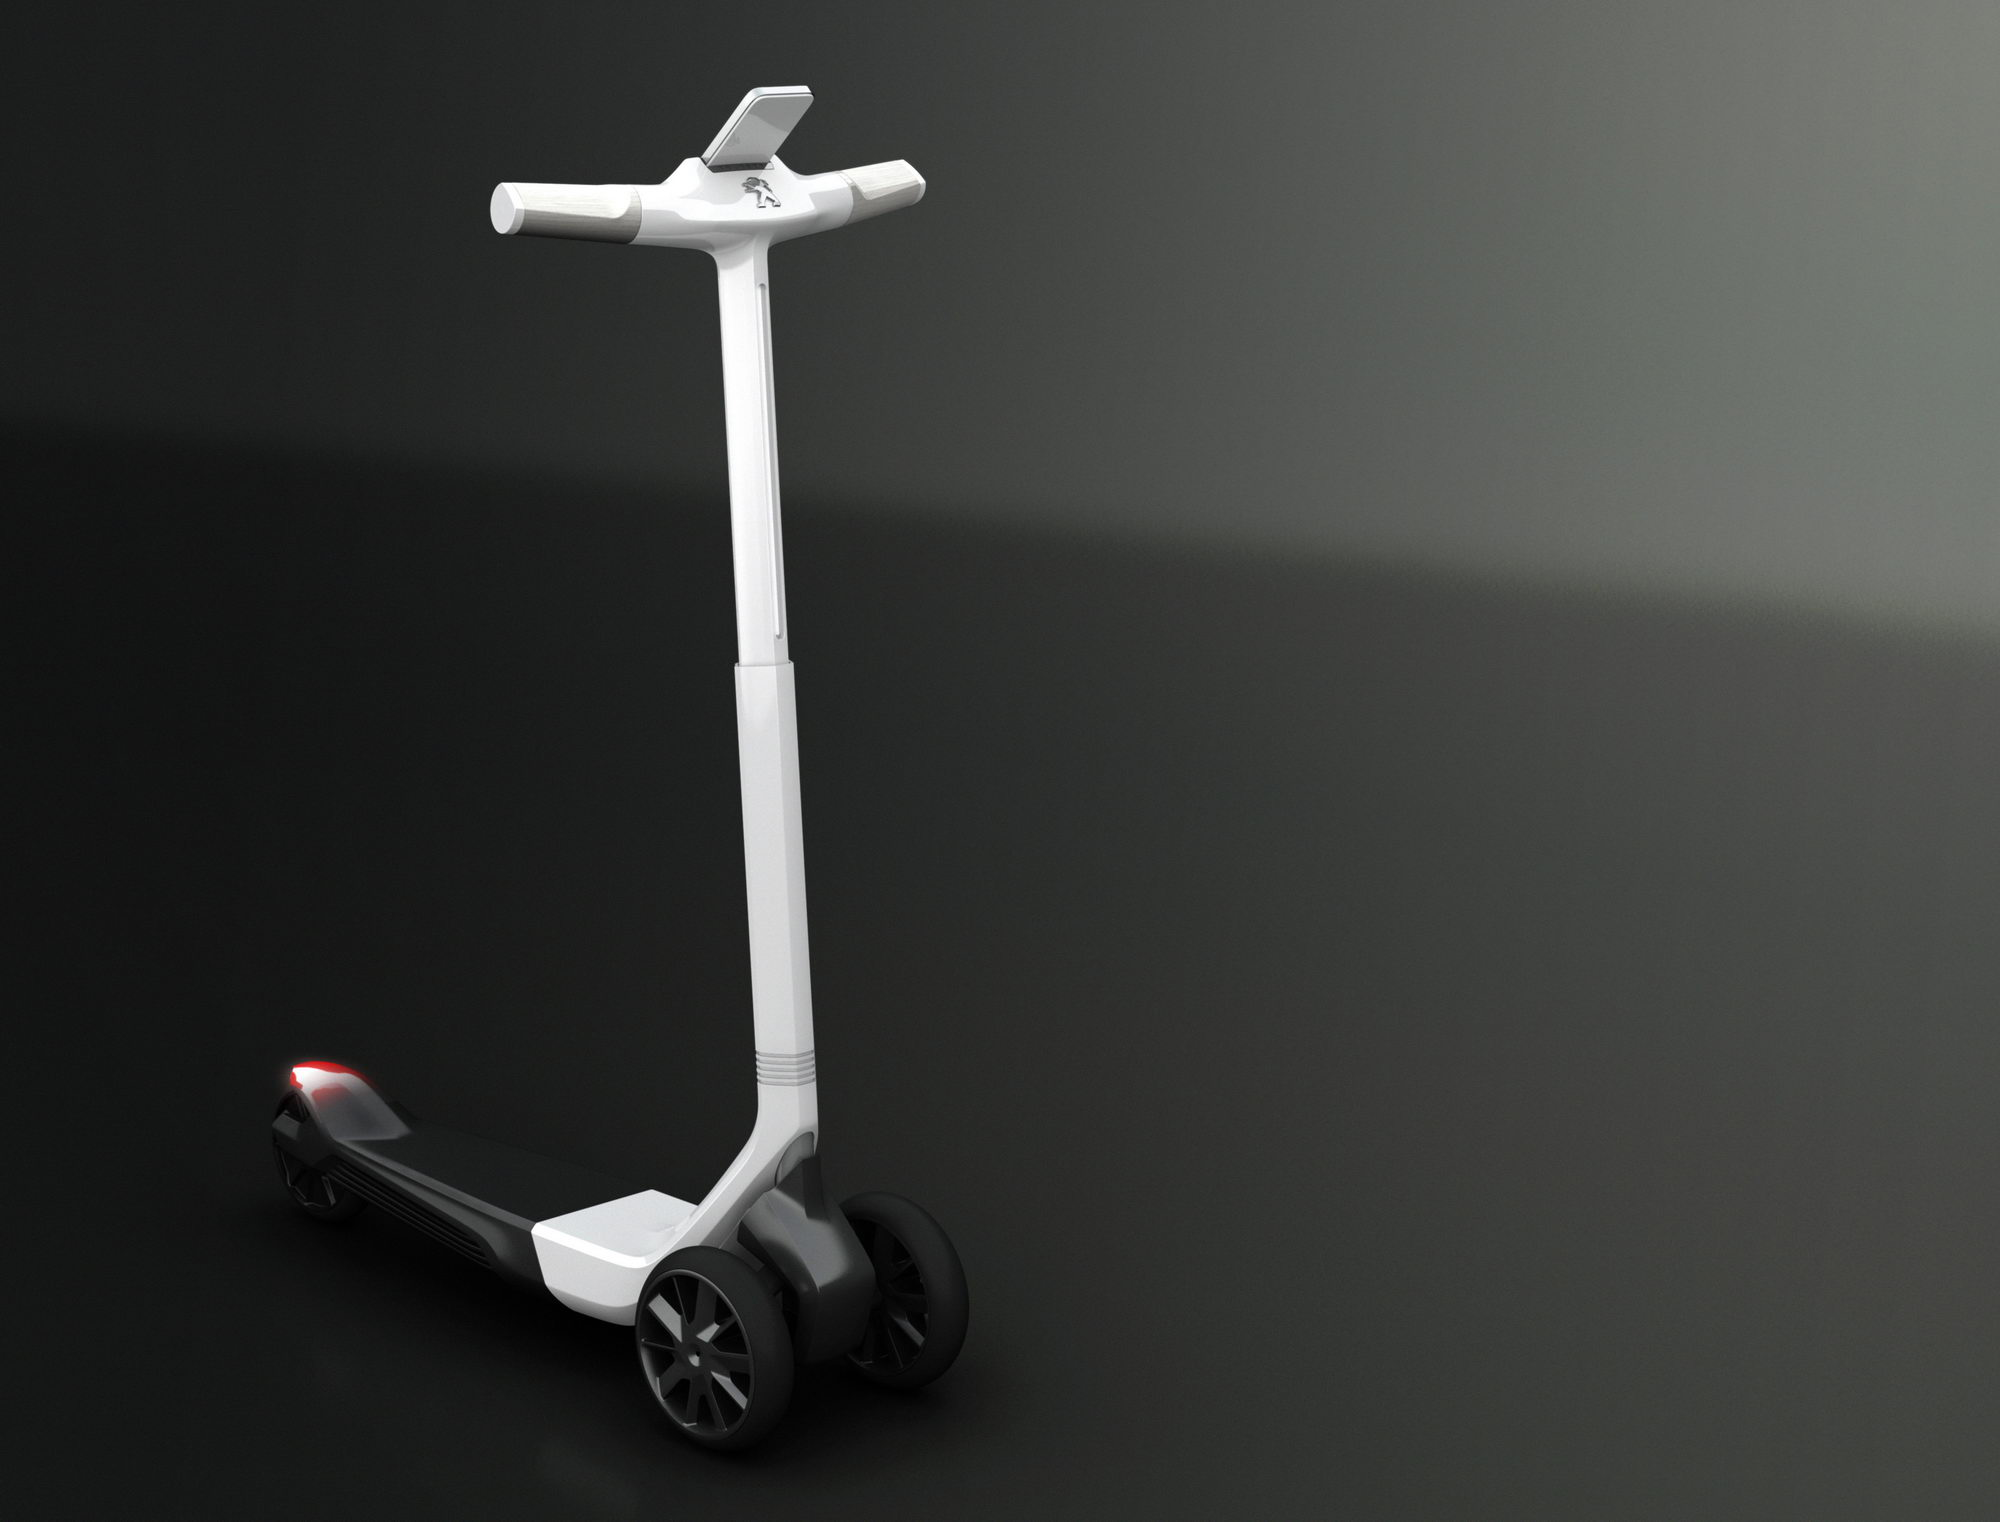 Peugeot Electric Scooter Concept Transportation